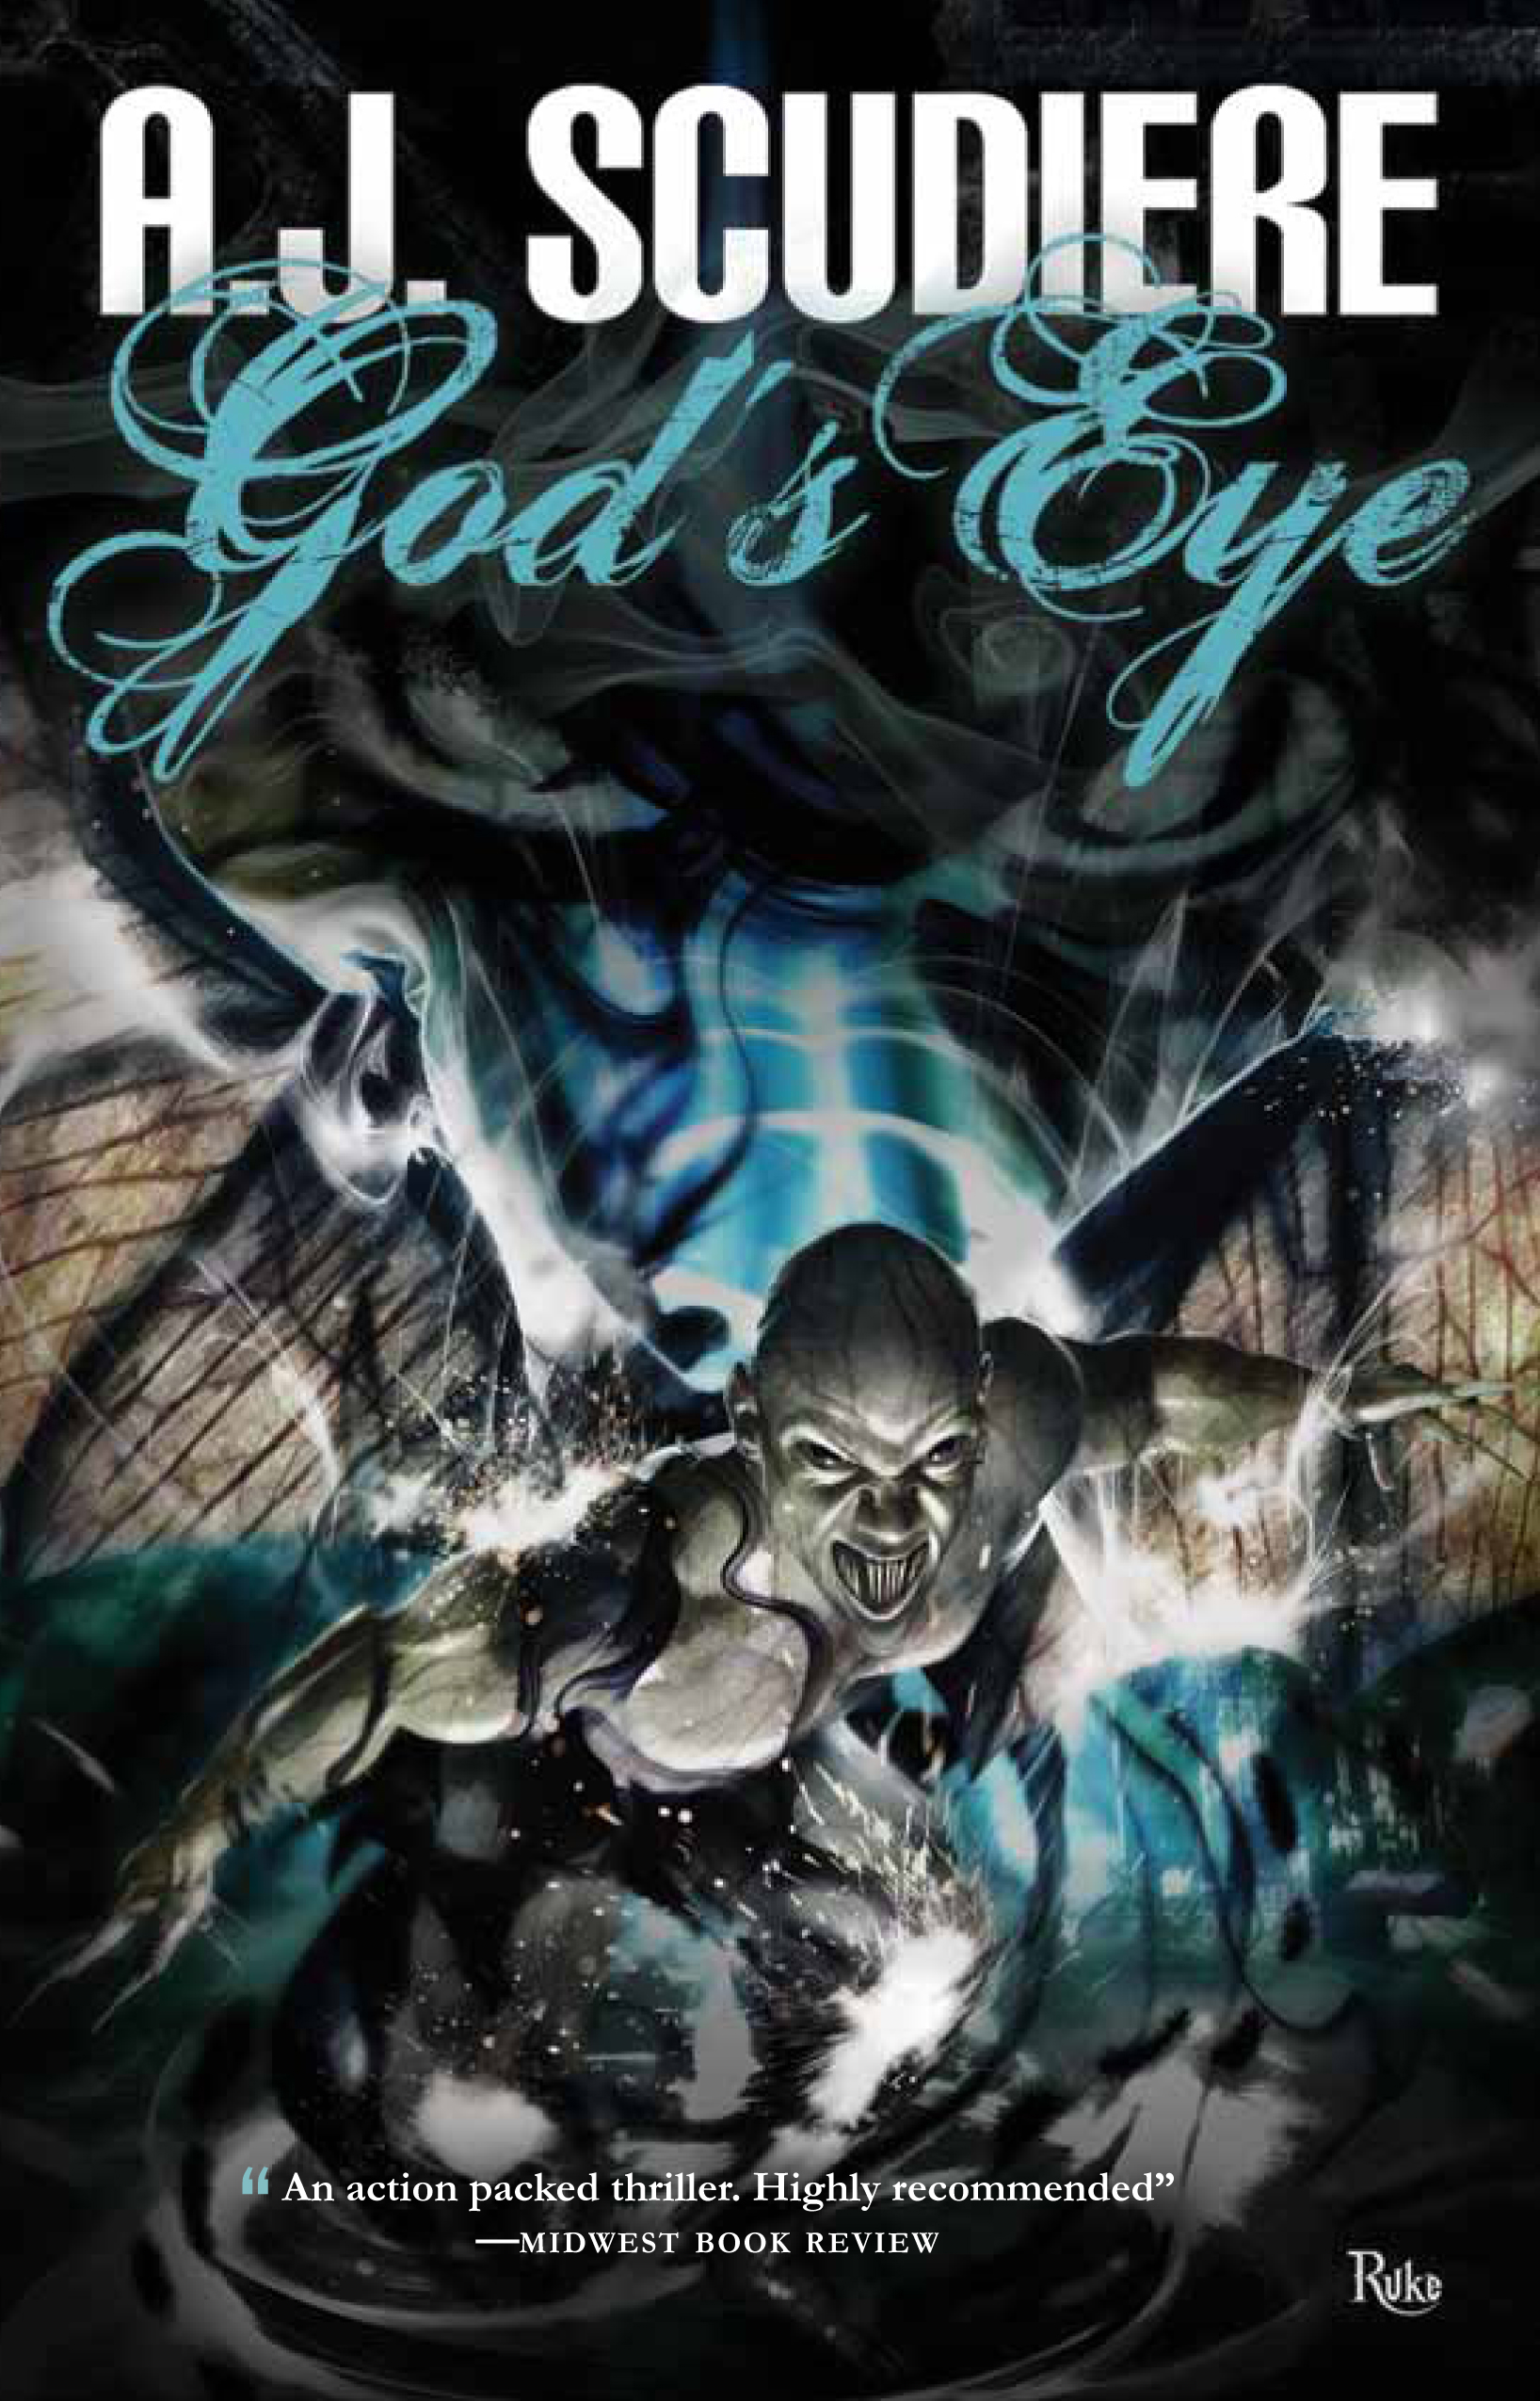 GOD god GODS gods eye by aj AJ scudiere griffyn ink publishing